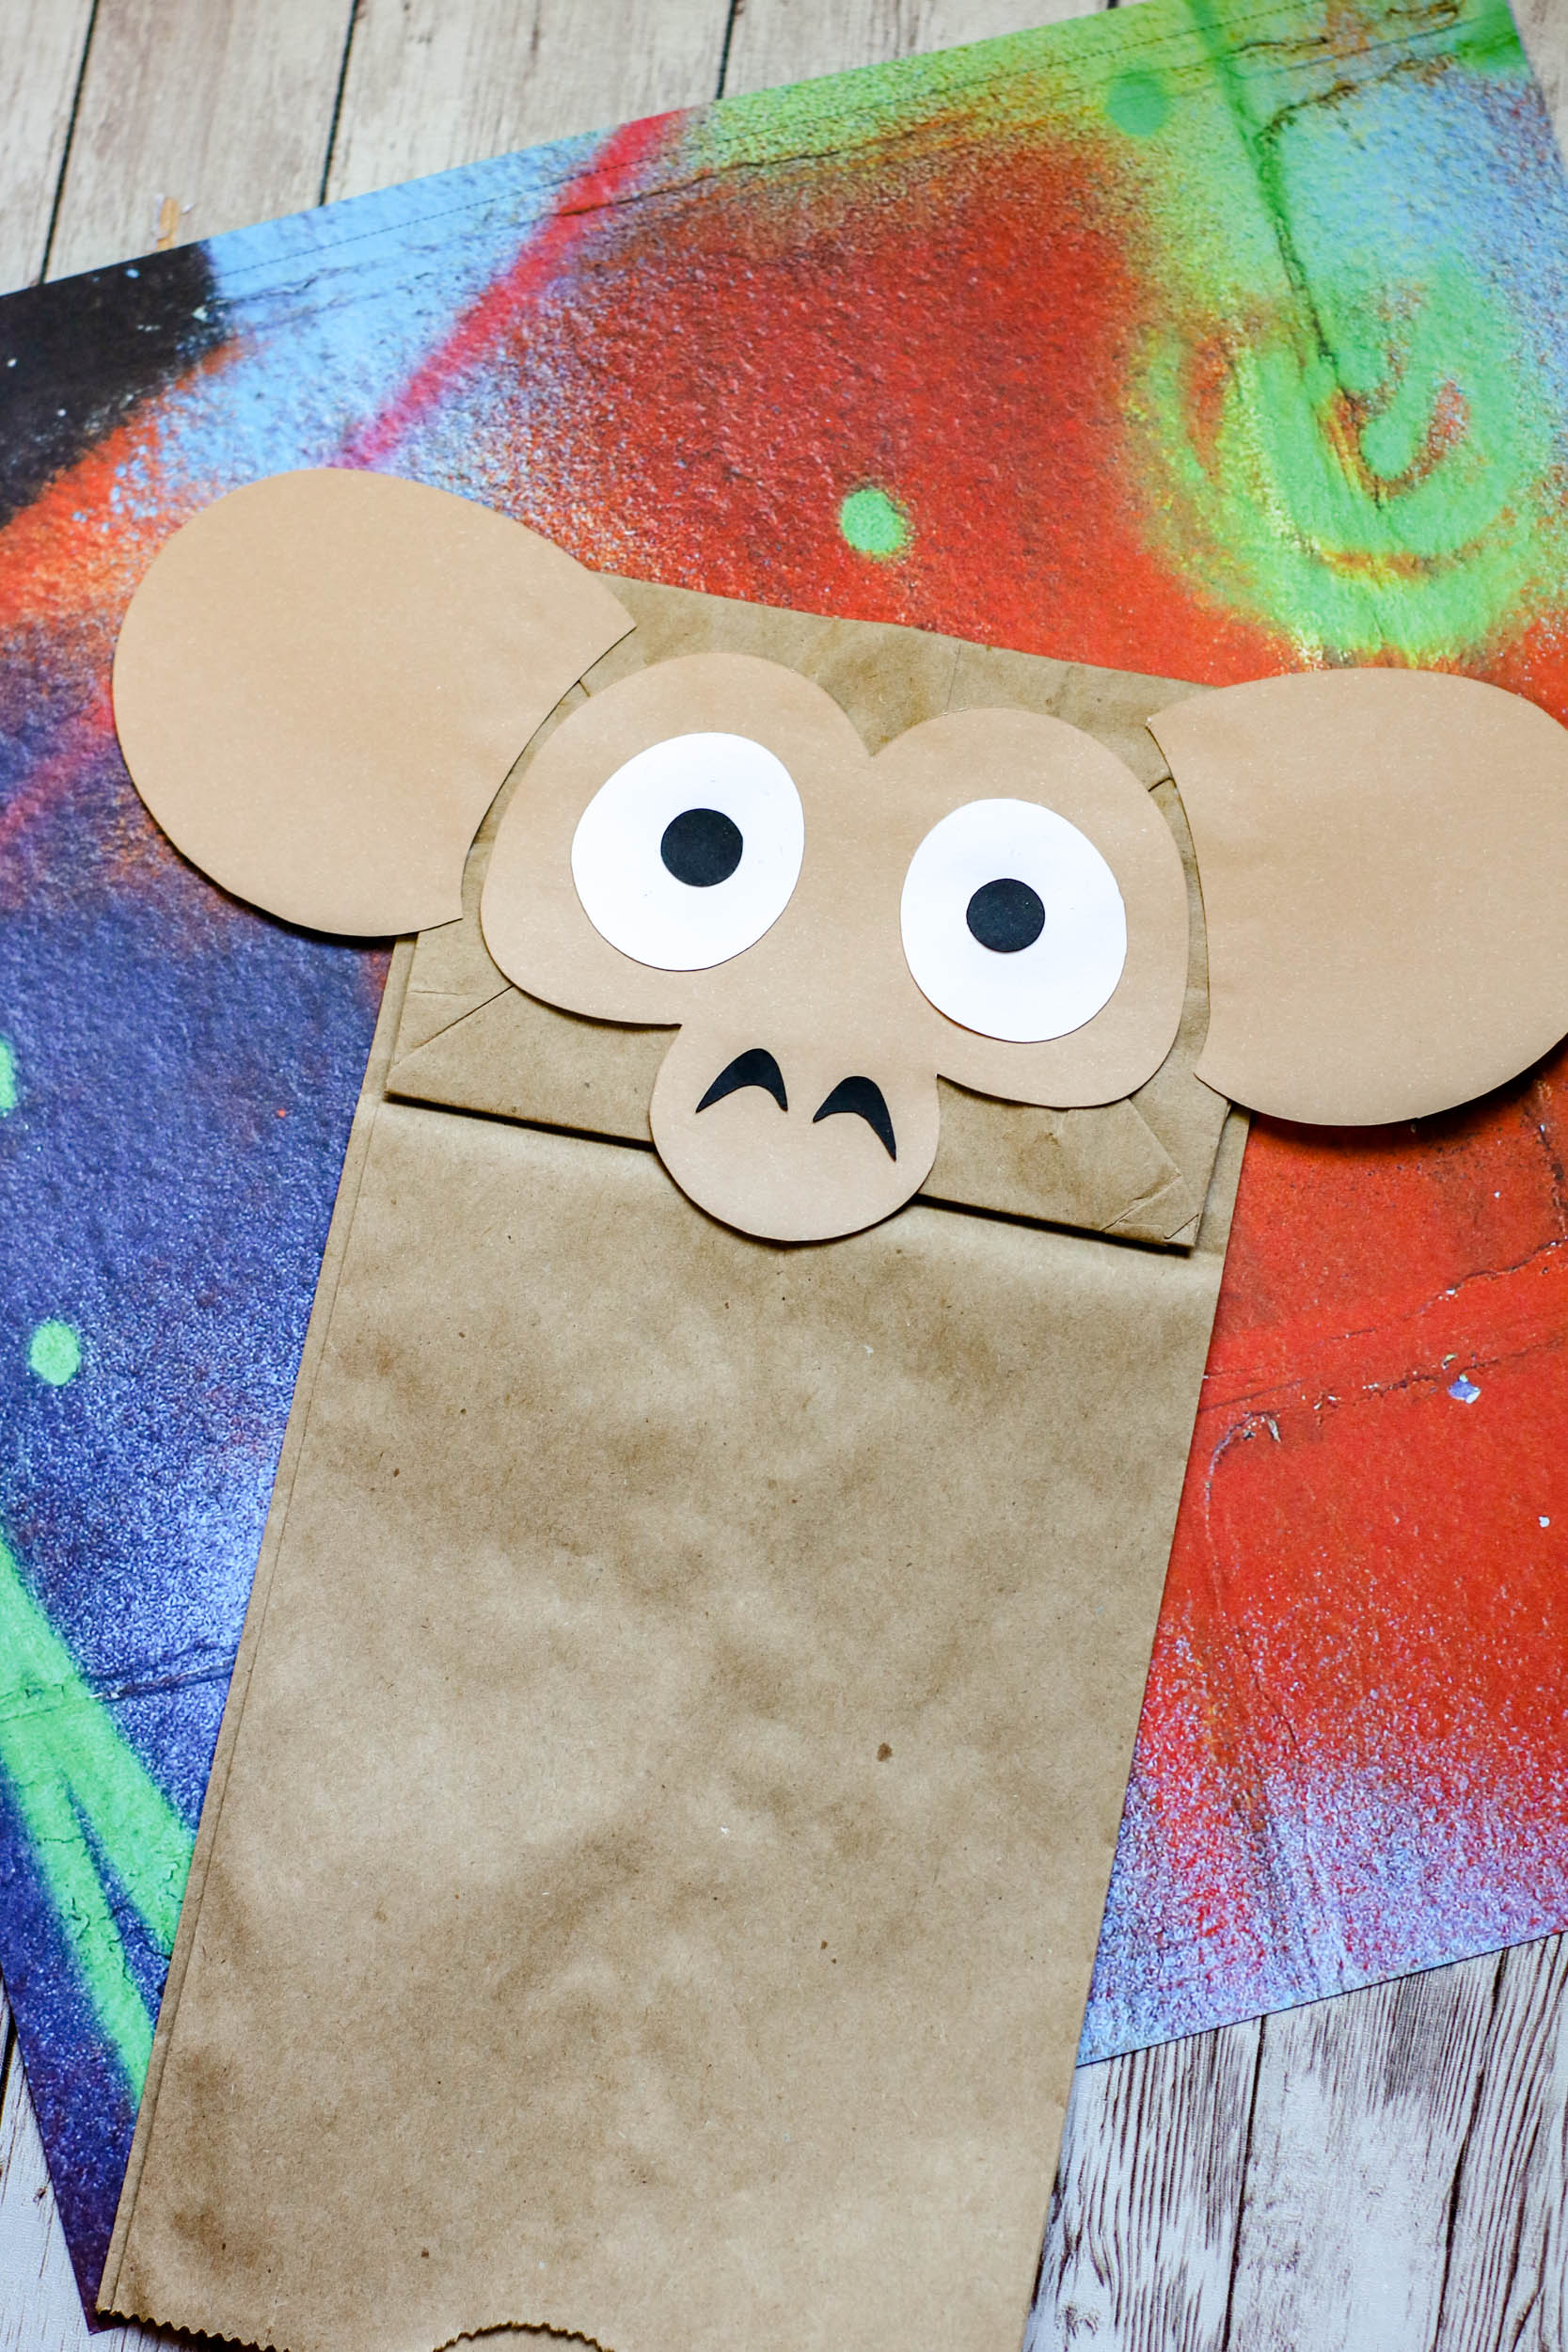 The decoration pieces on a brown bag.